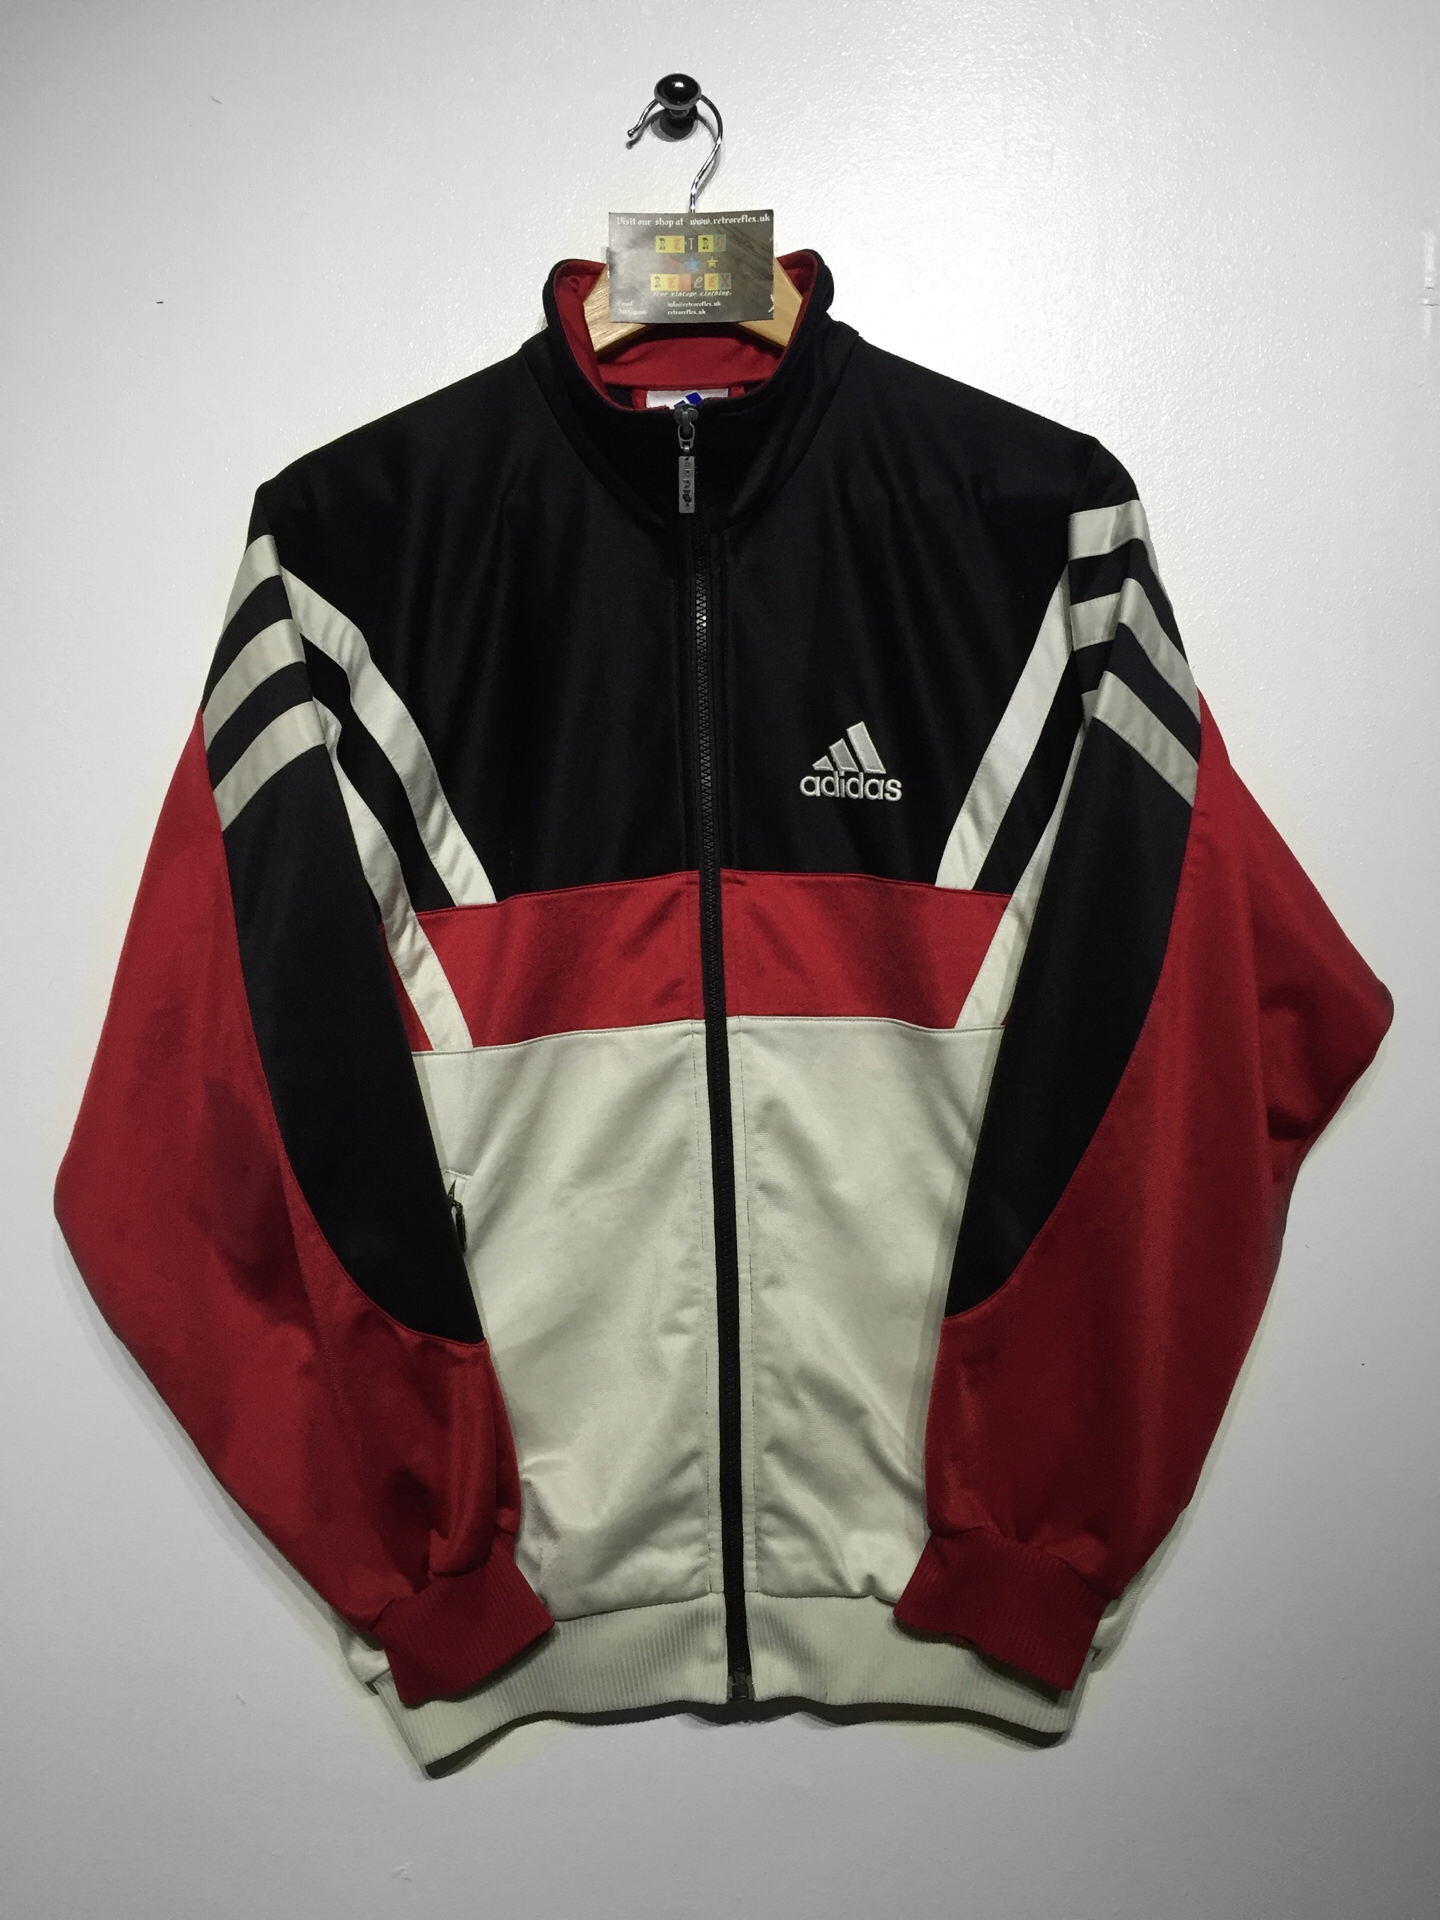 Adidas Track Jacket Size Small 163 30 Website ️ Www